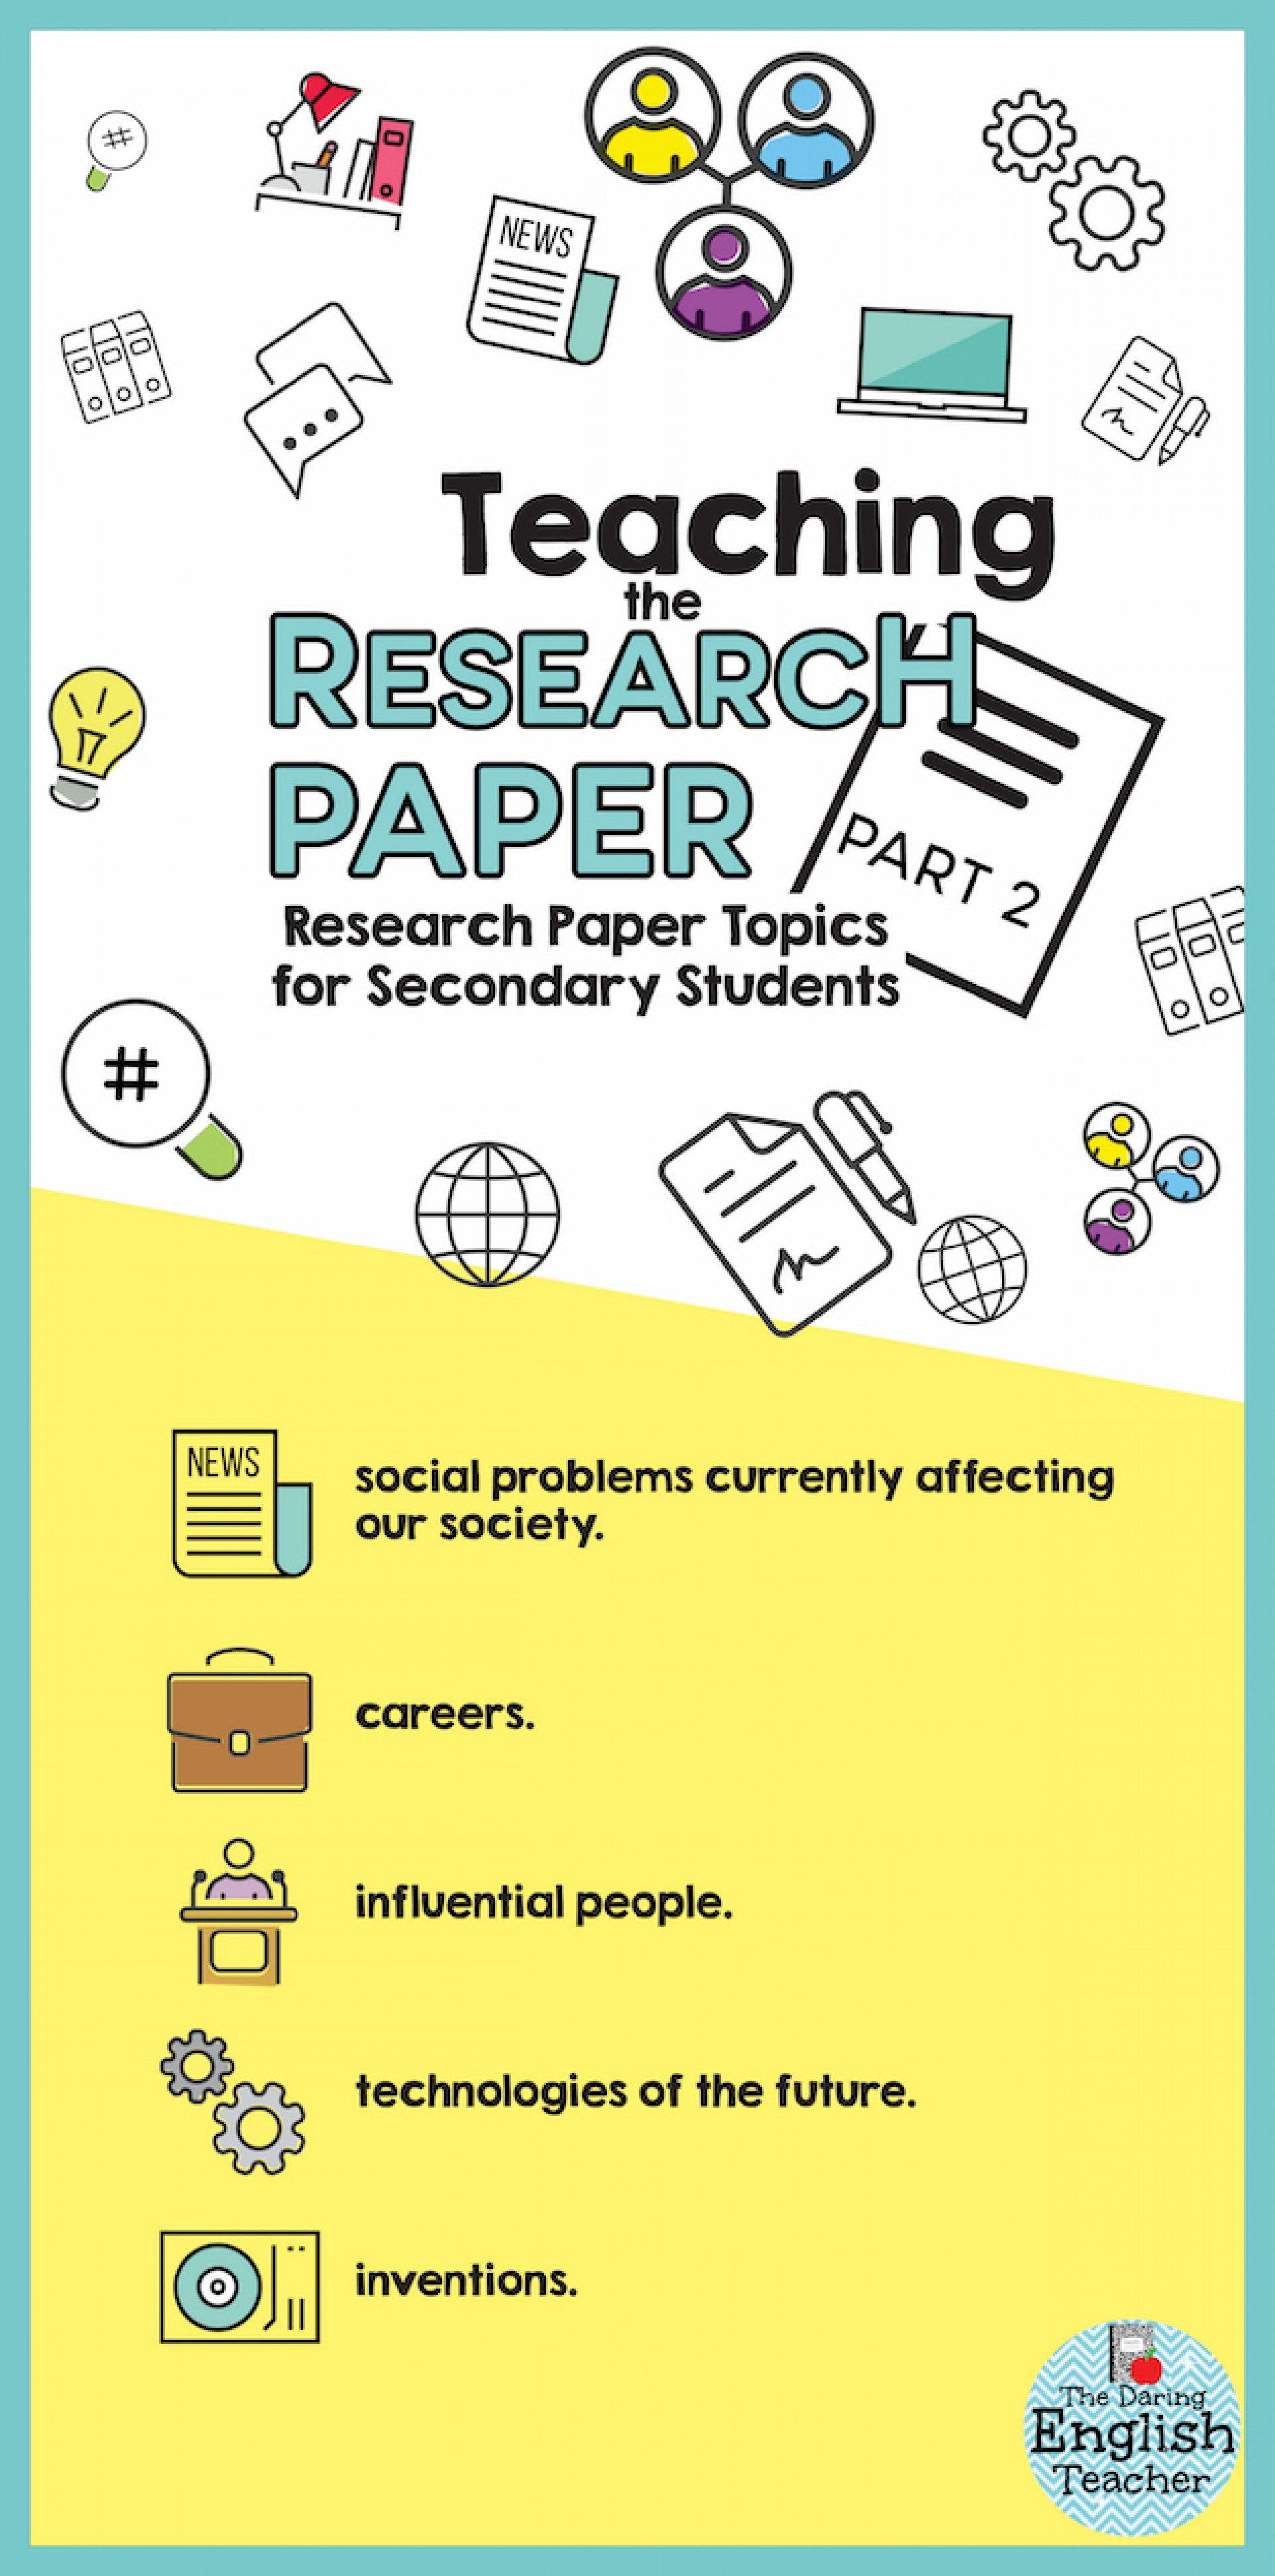 020 Infographic2bp22b2 Research Paper Topic For Unusual A Topics On Education Best High School Papers Business Management 1920